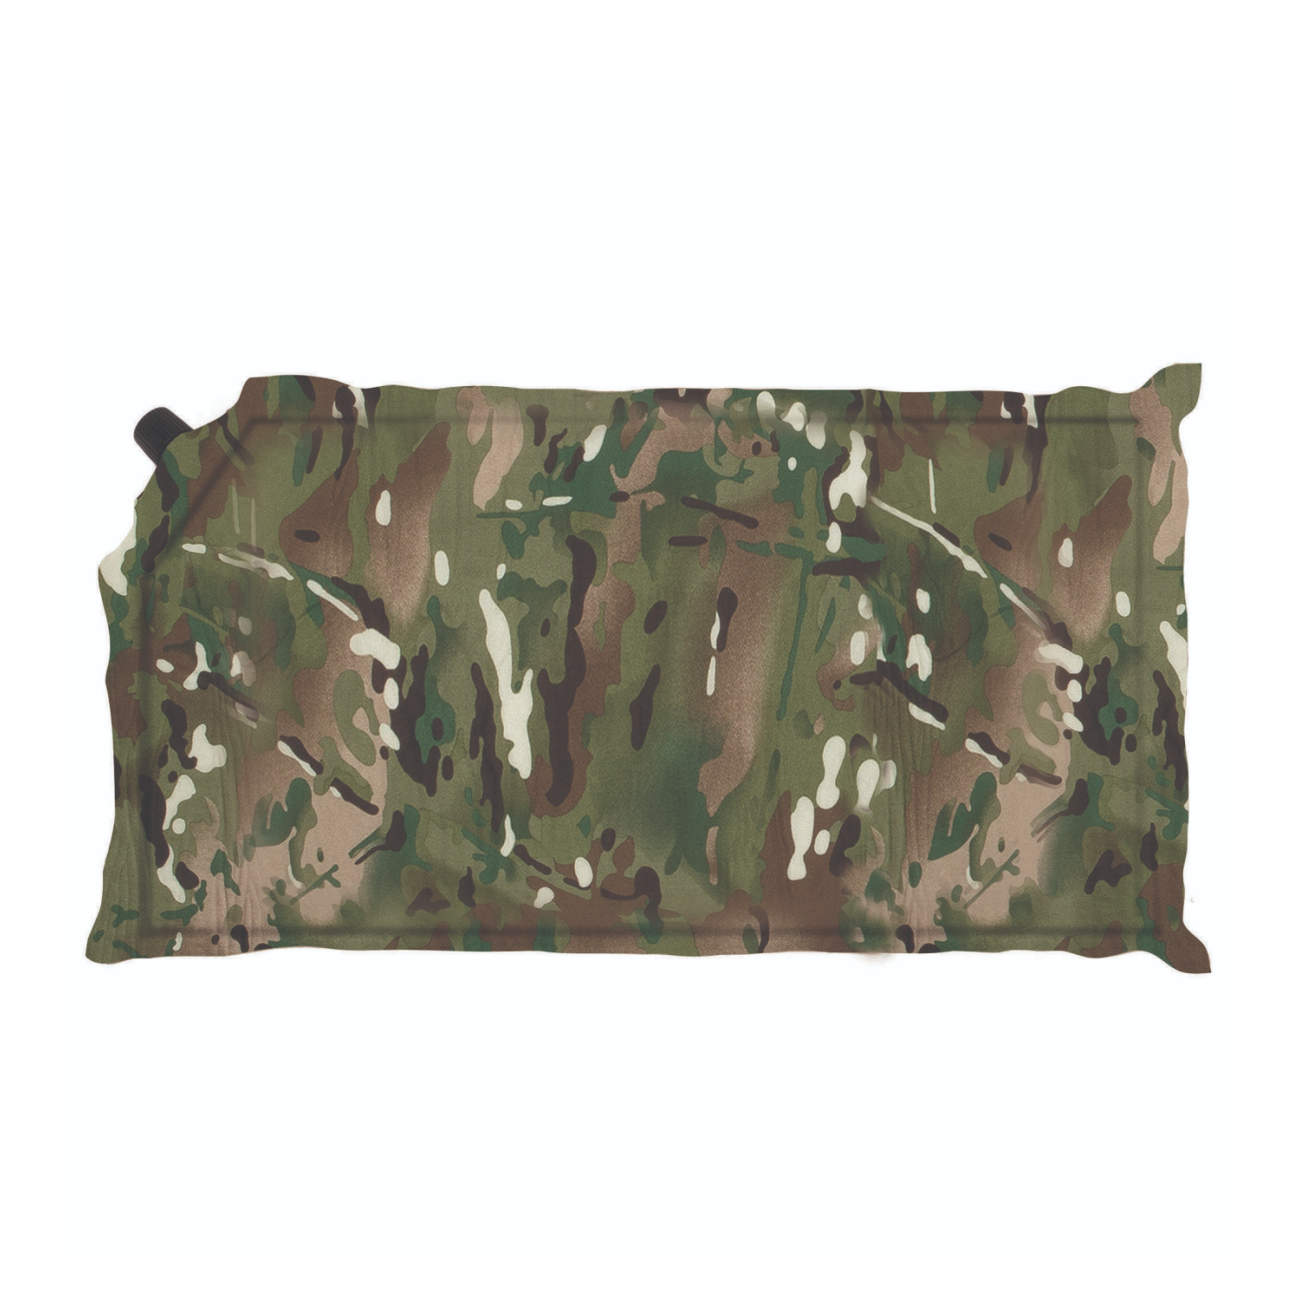 Highlander Base Self-Inflating Pillow - HMTC Camouflage